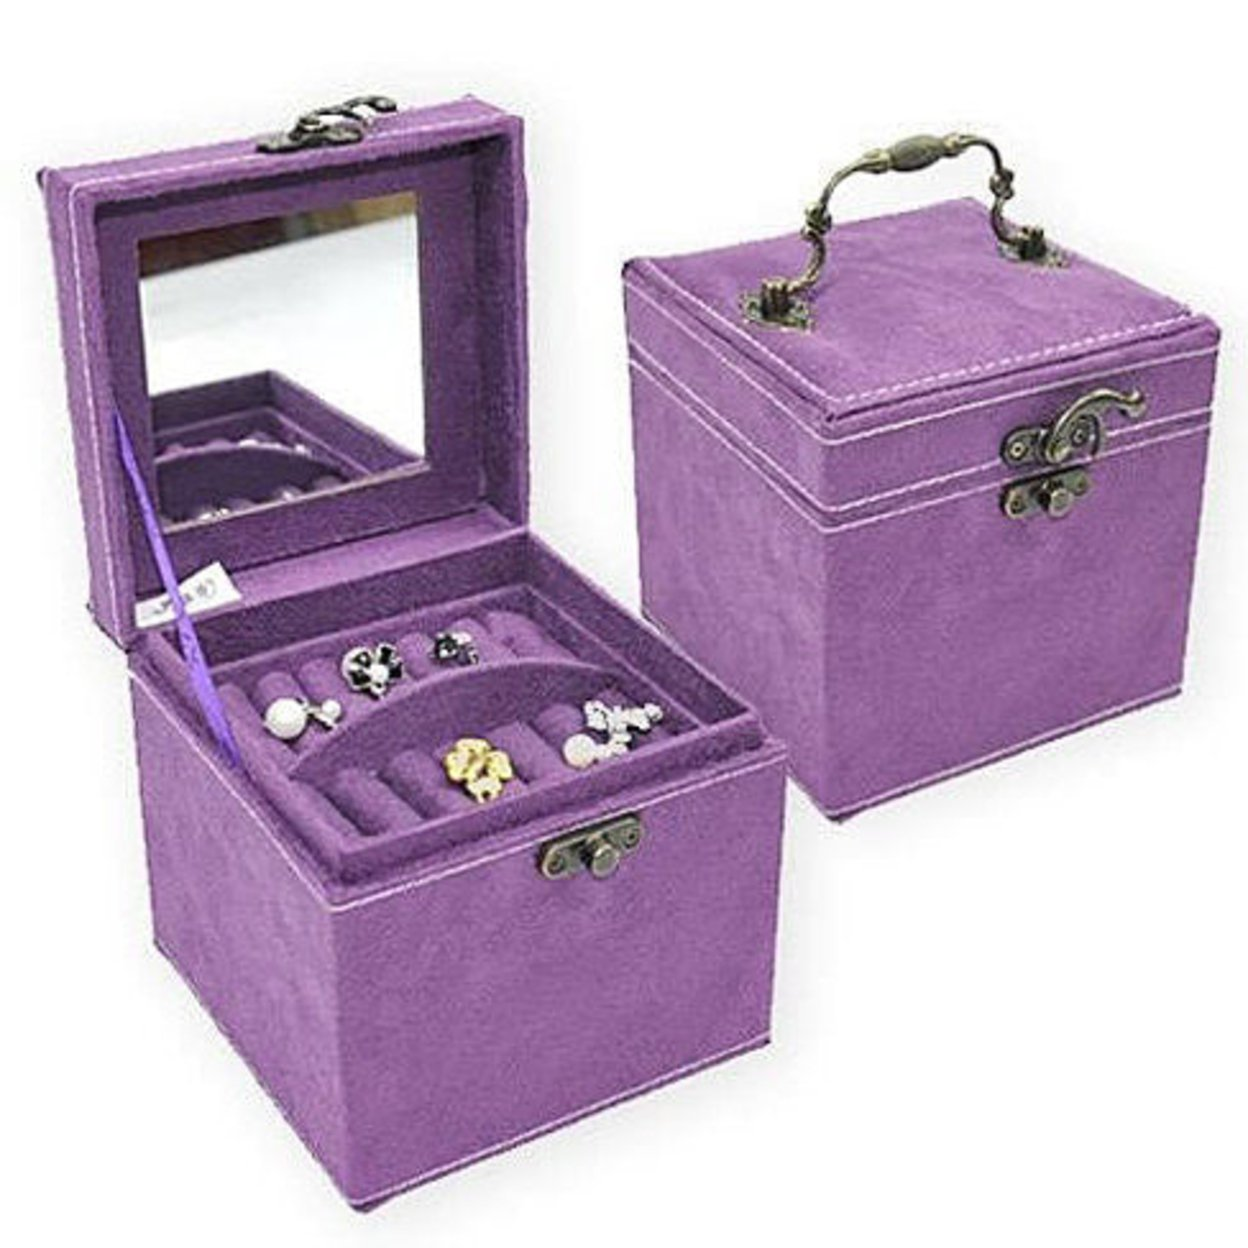 Soft Velour Ornate Jewel Box In Luscious Colors - Purple 5366dc1cc46da103760006a1